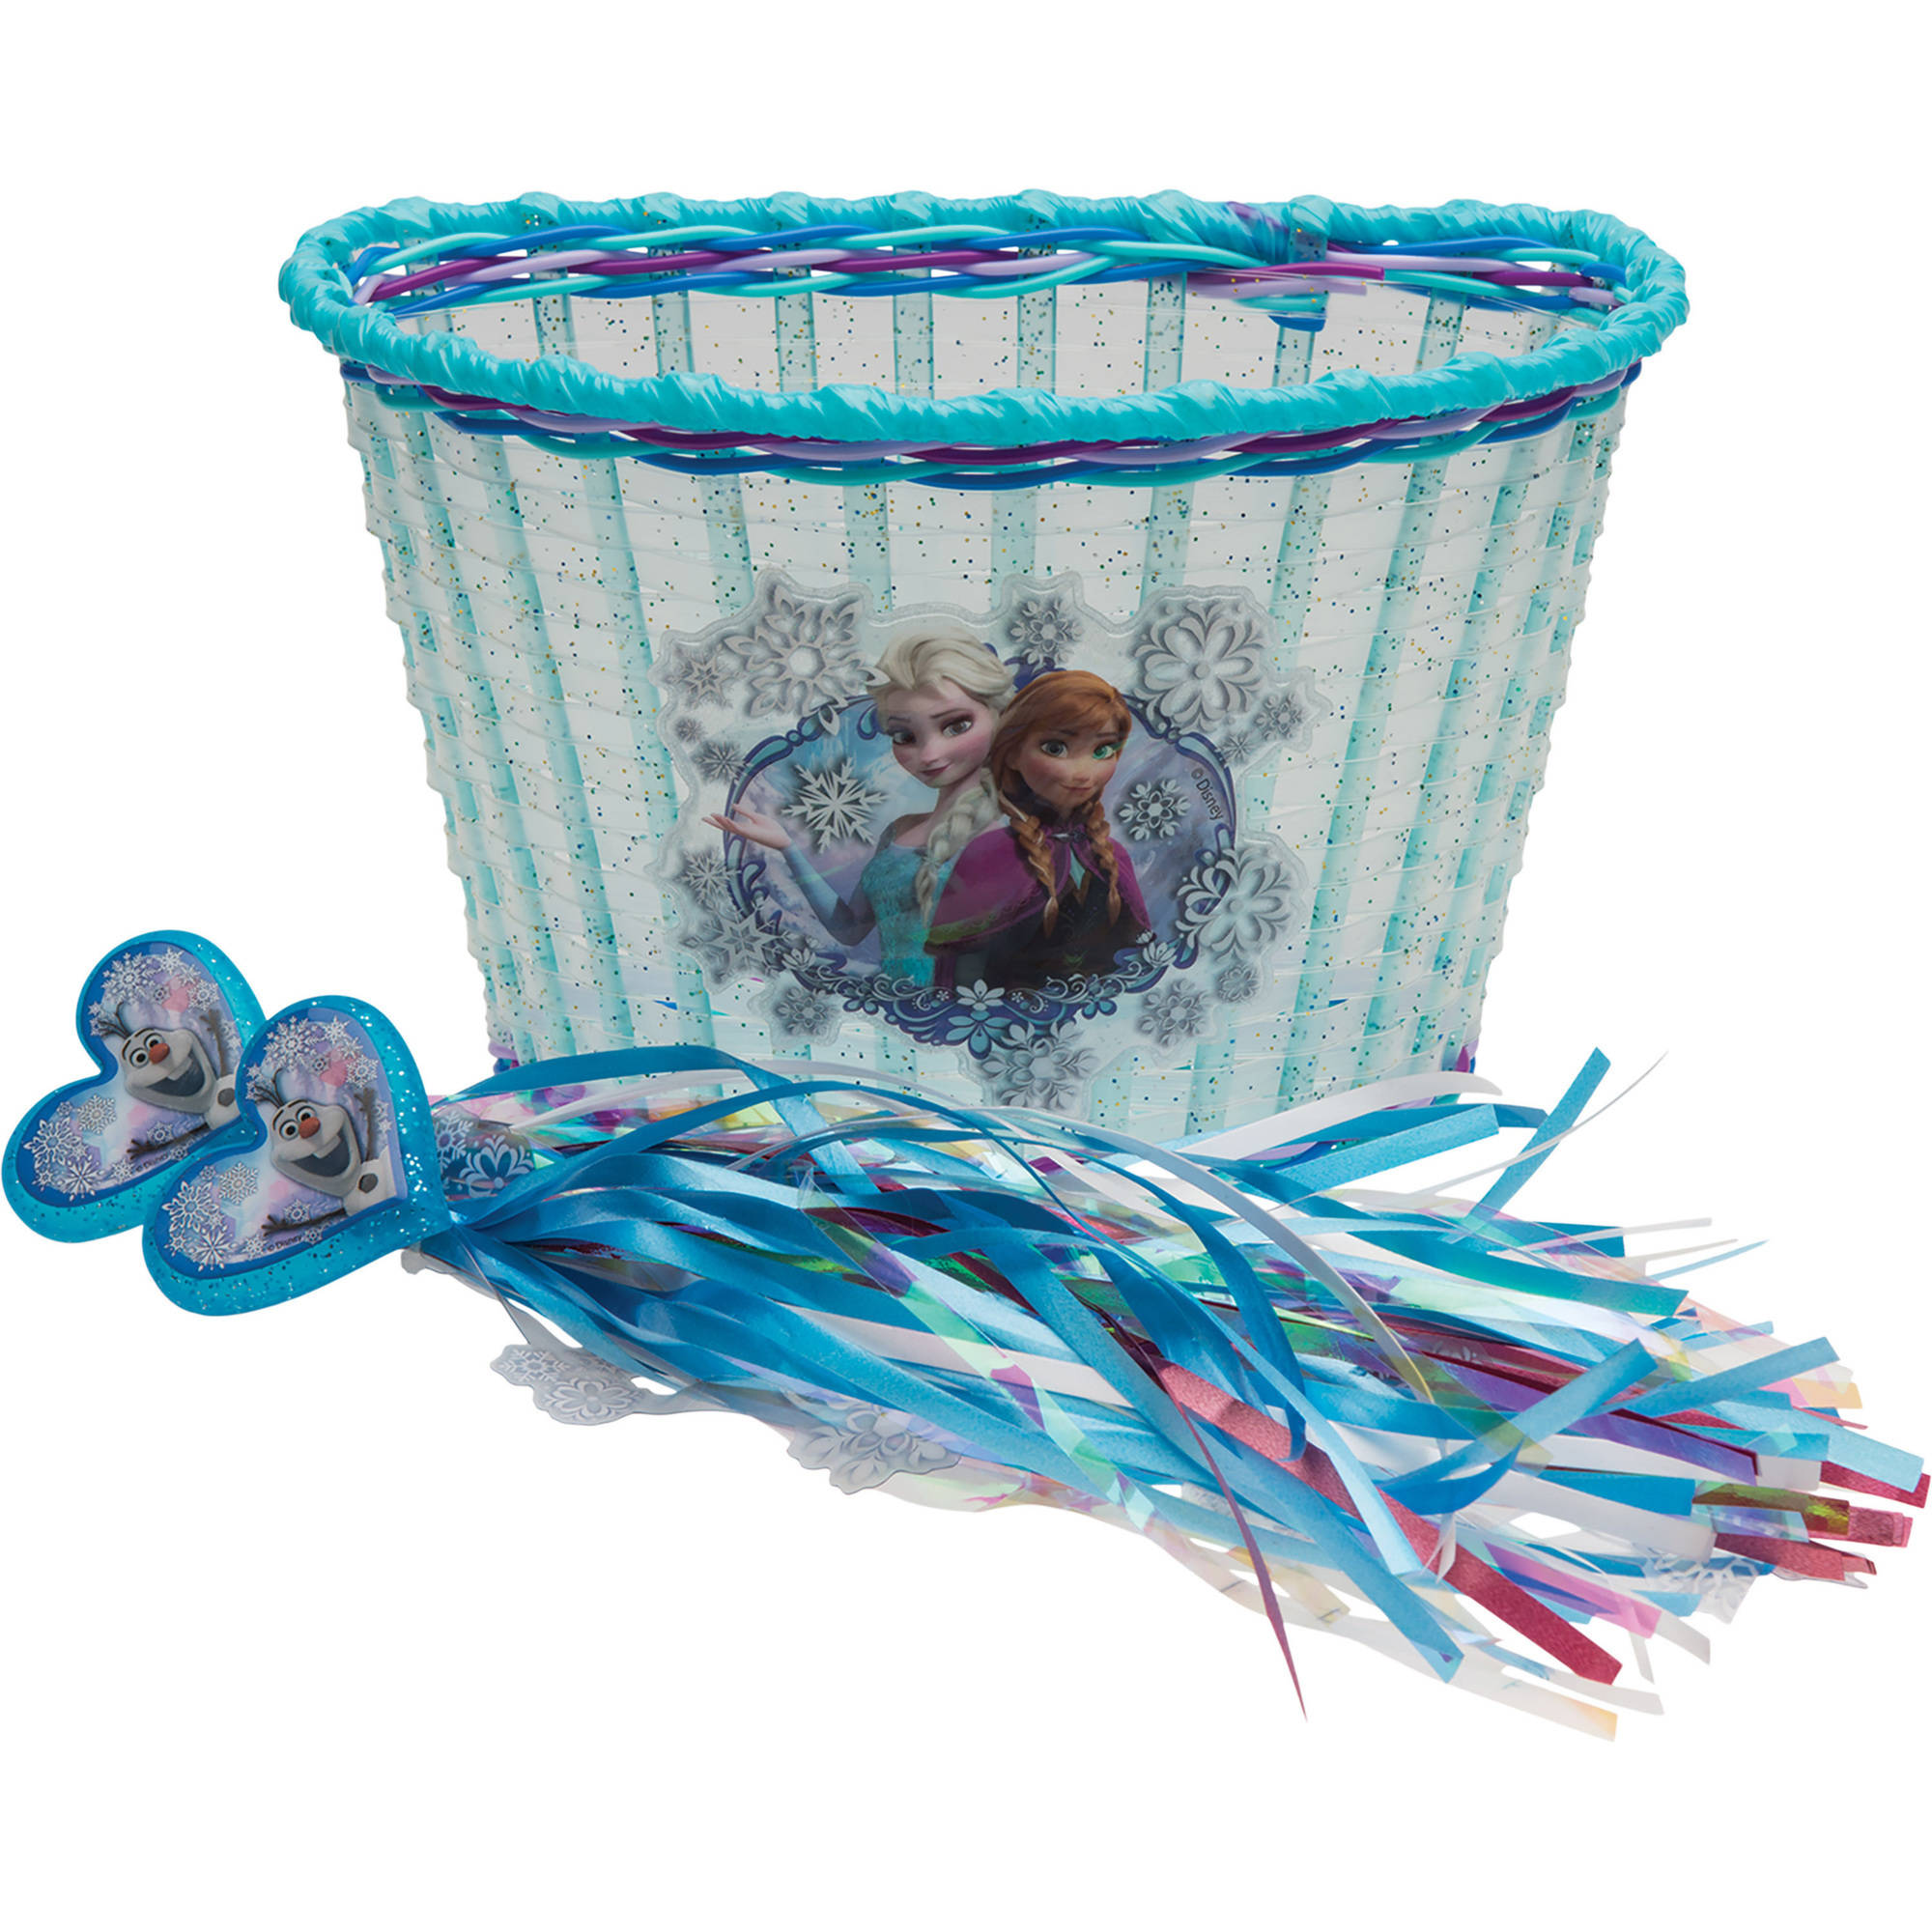 Bell 7062818 Disney Frozen Accessory Pack Basket and Streamers